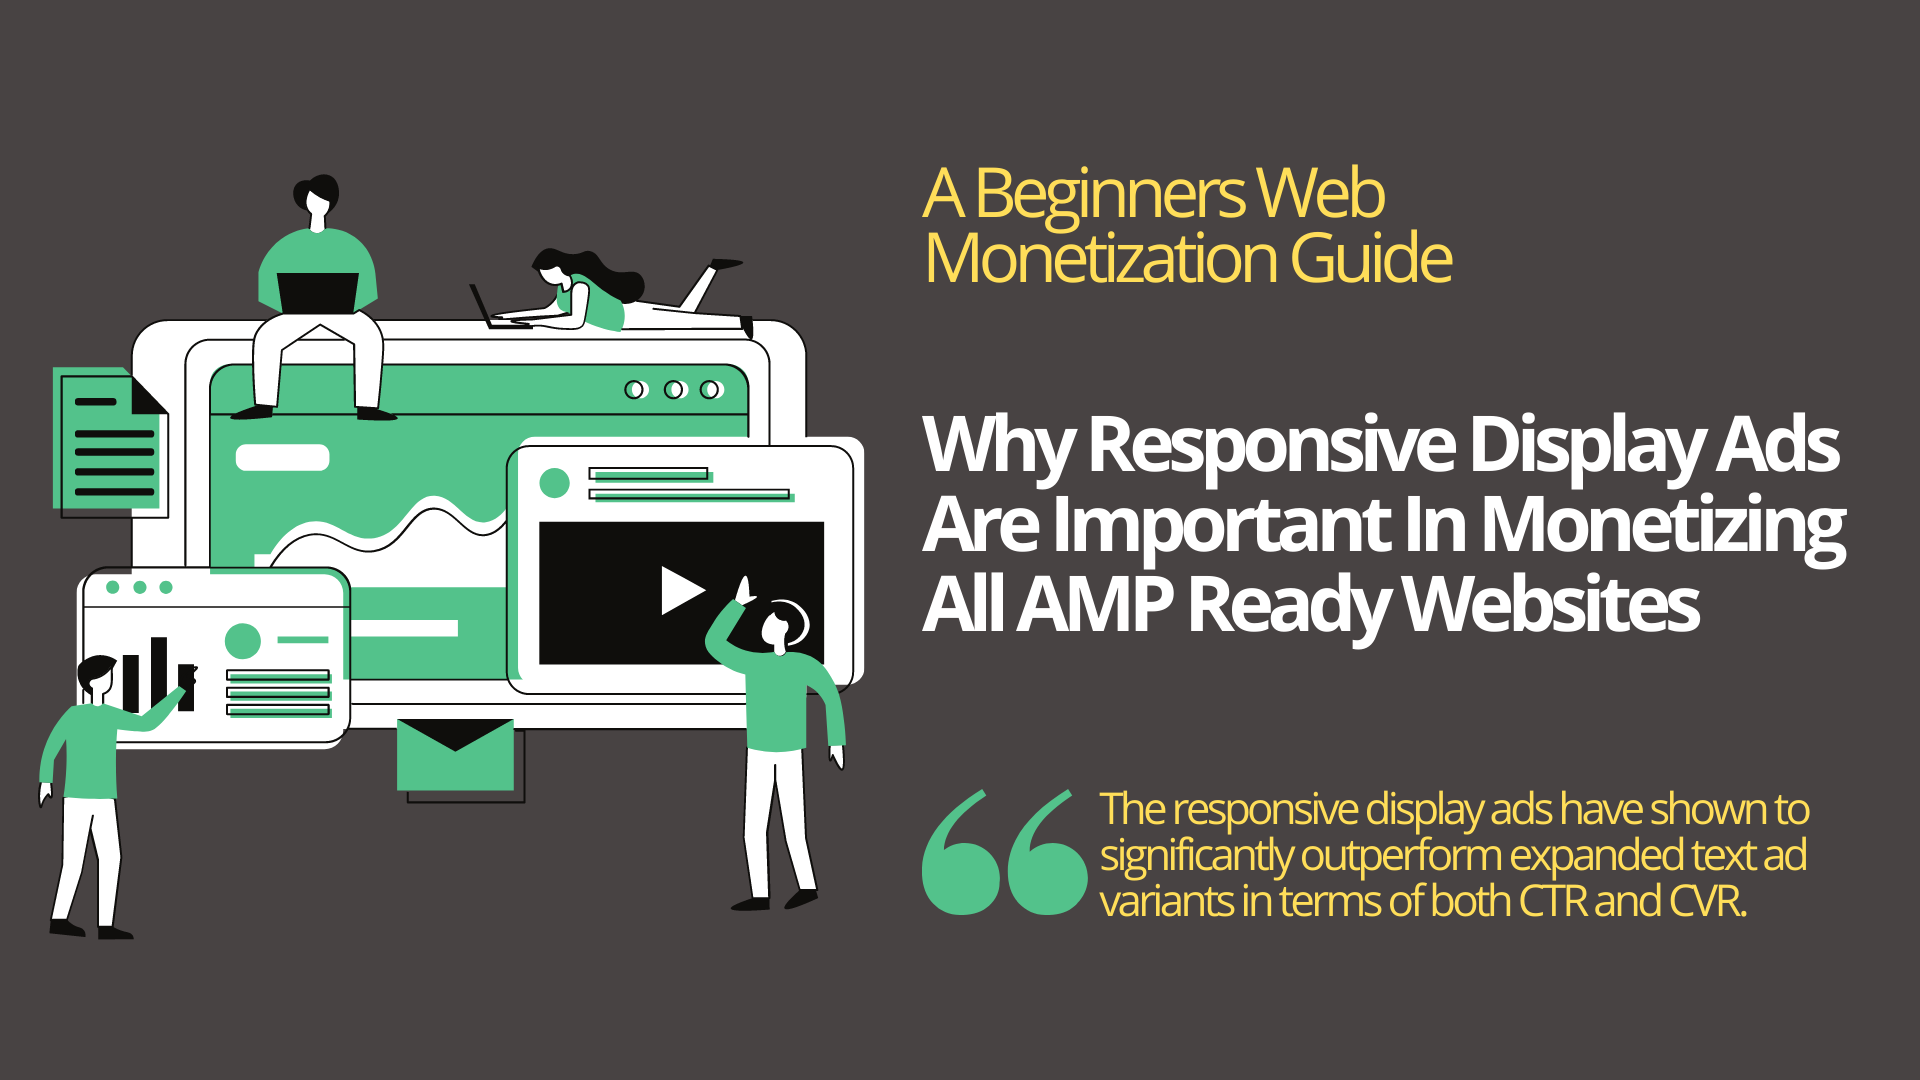 What are Responsive Display Ads?